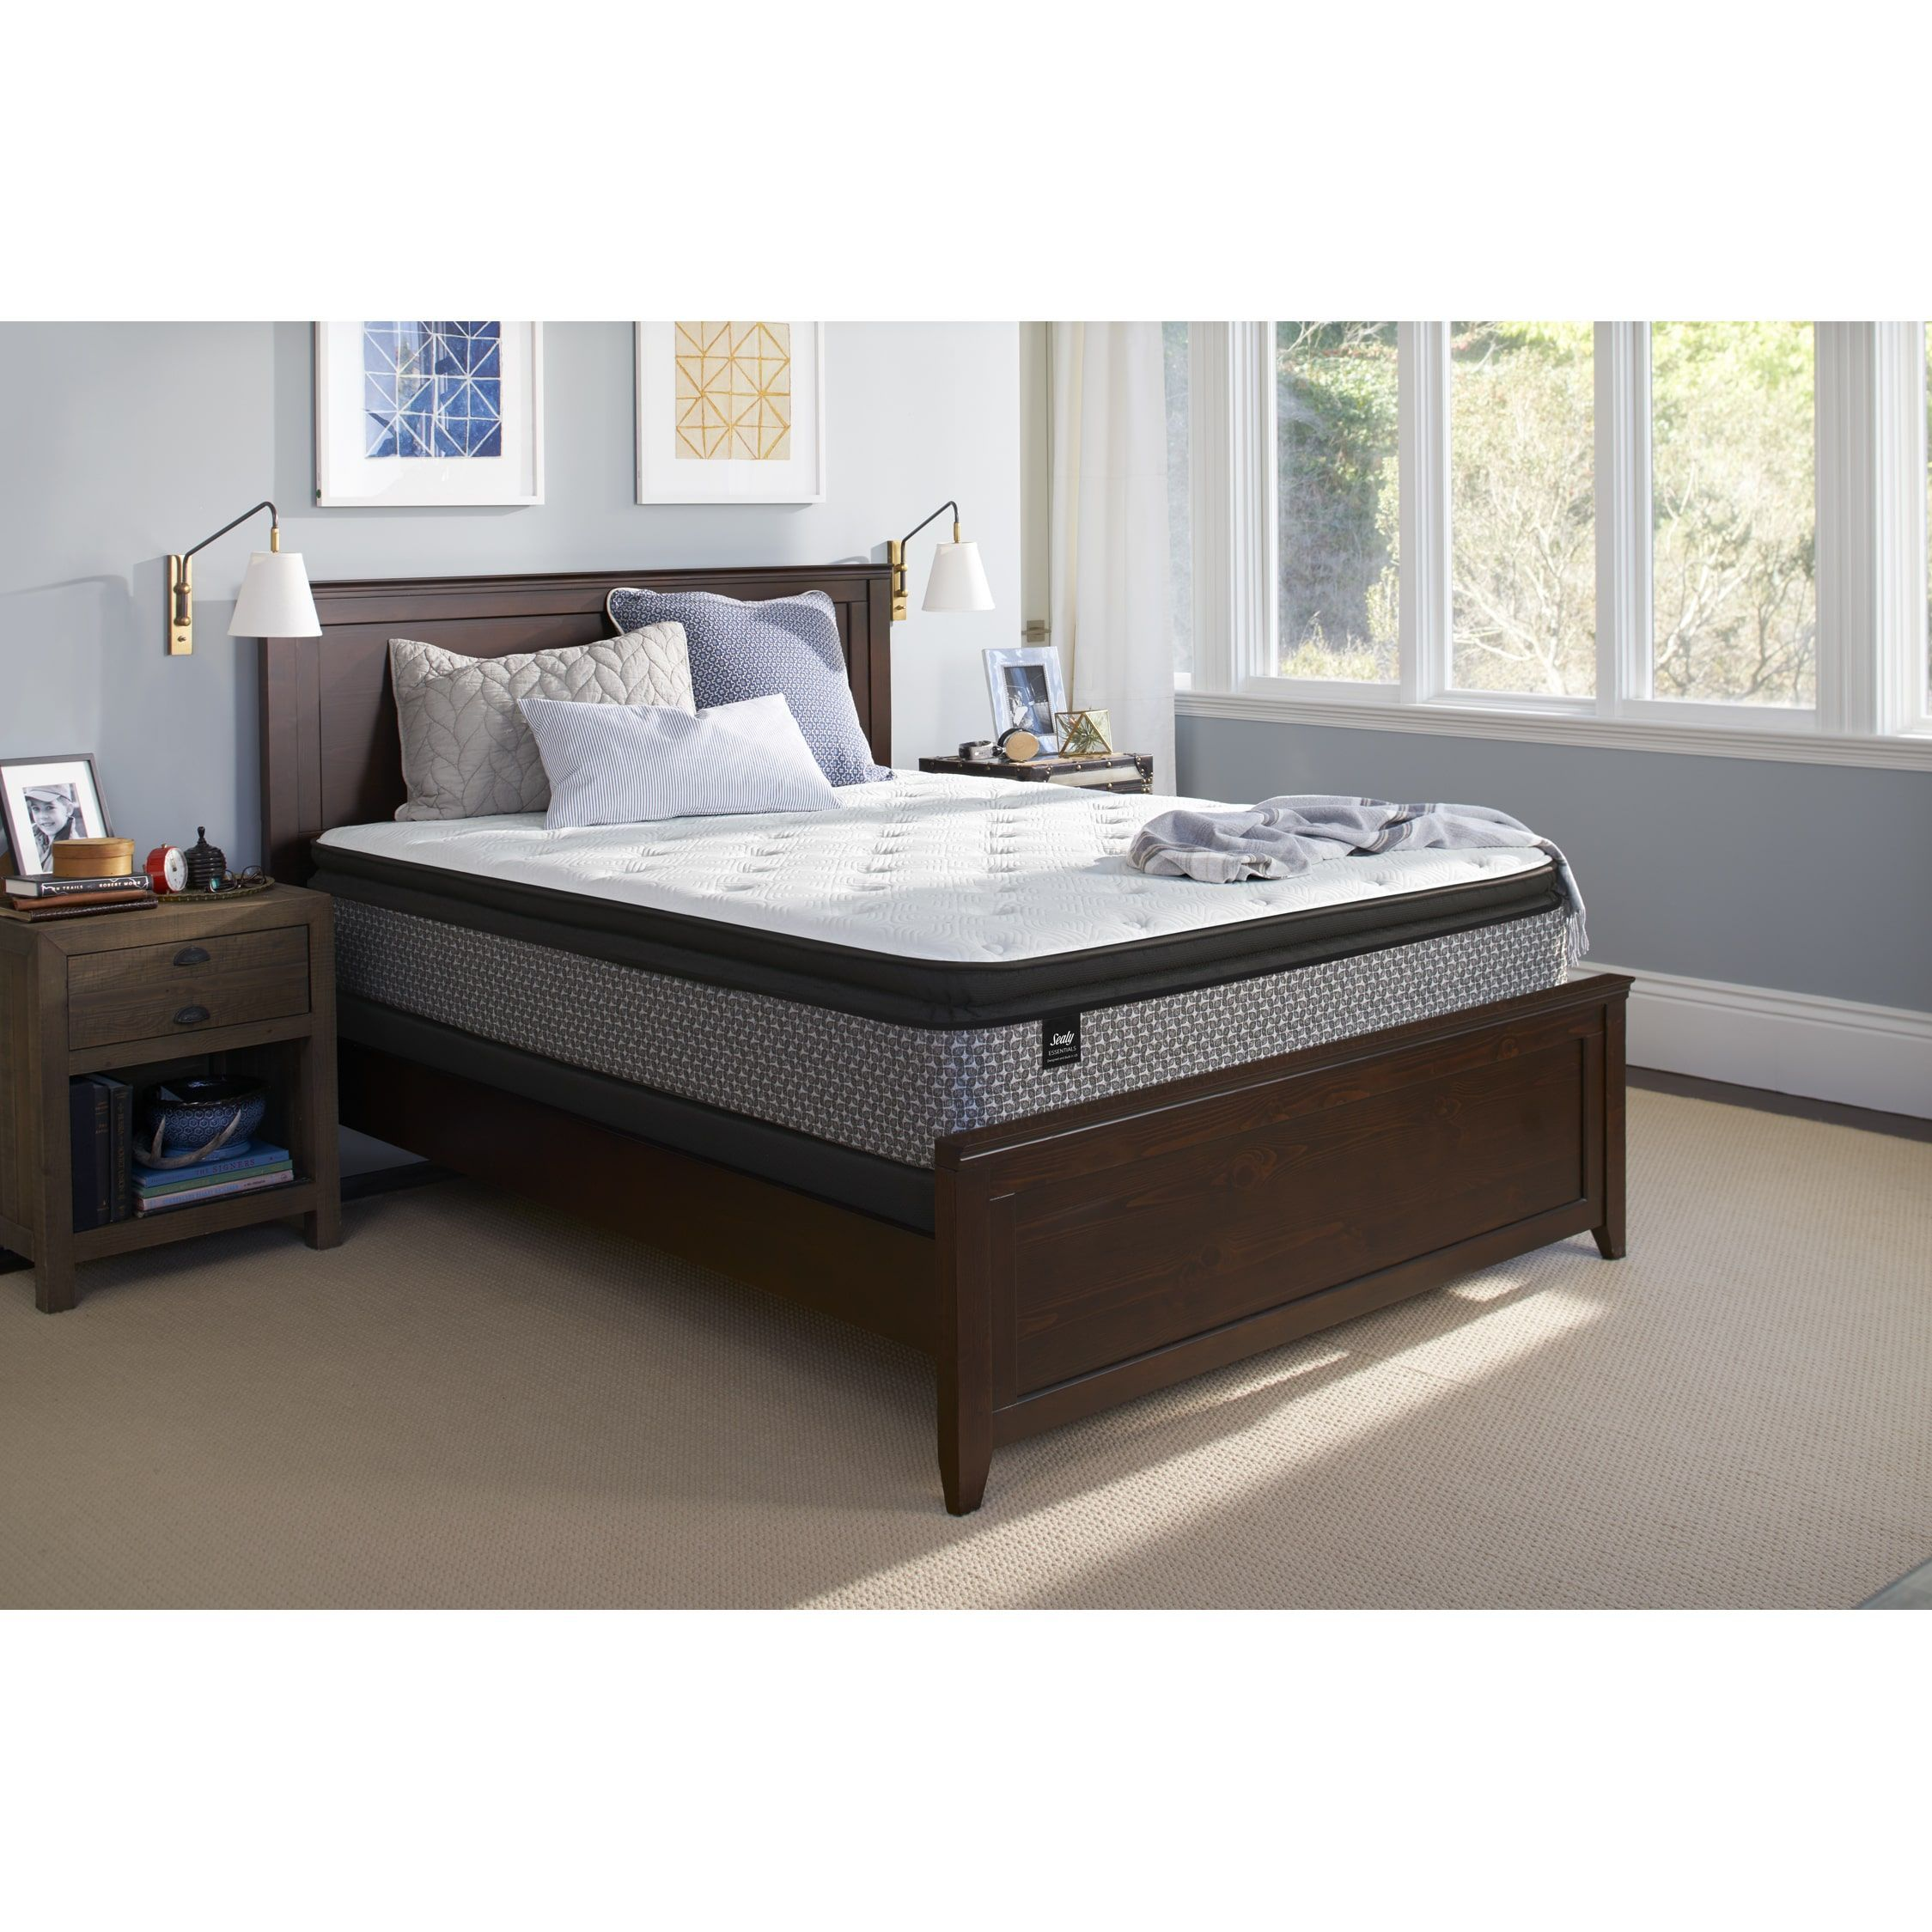 mattress amazing amazon cheap wonderful awesome set mat queen size of sp refreshing dimensions exotic double foam kitchen boxspring twin and master full sleep a box fold bed com best inch wondrous bi bq spring memory measurements dining